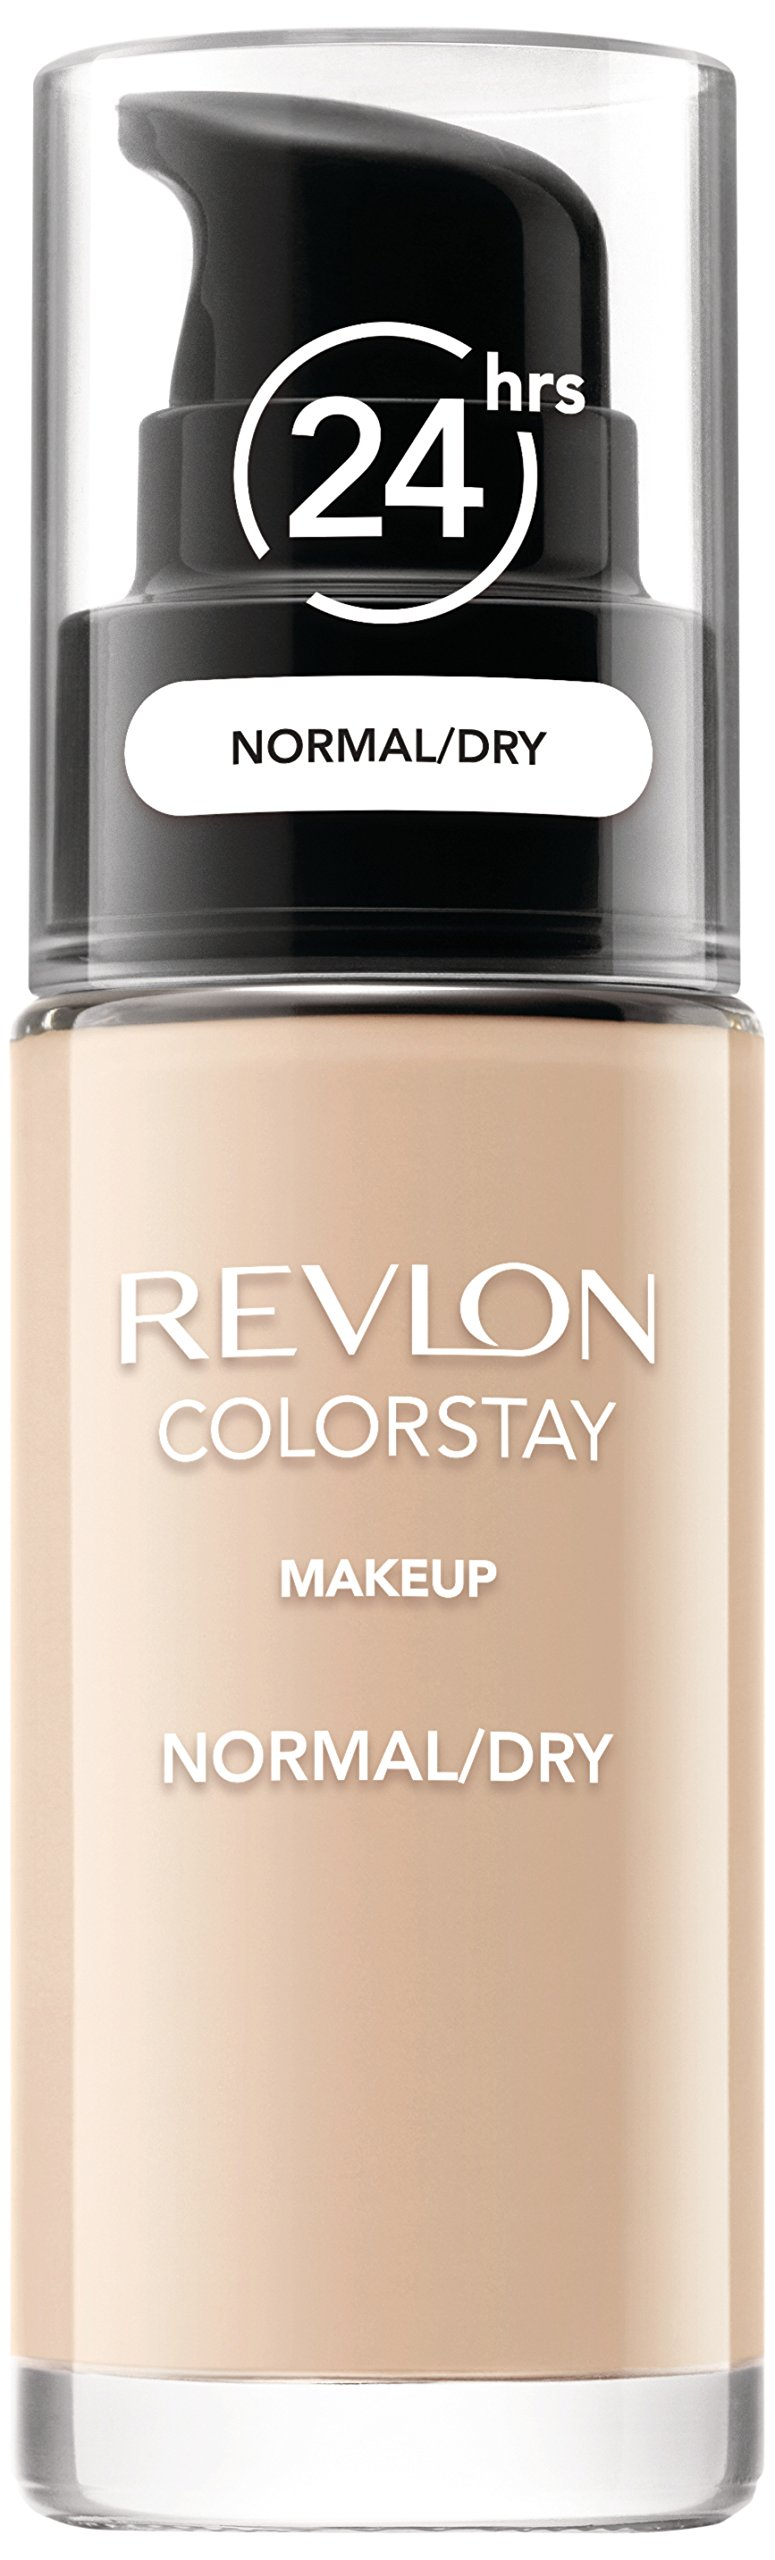 Revlon Color Stay Makeup for Normal/Dry Skin,  Buff, 1 Ounce